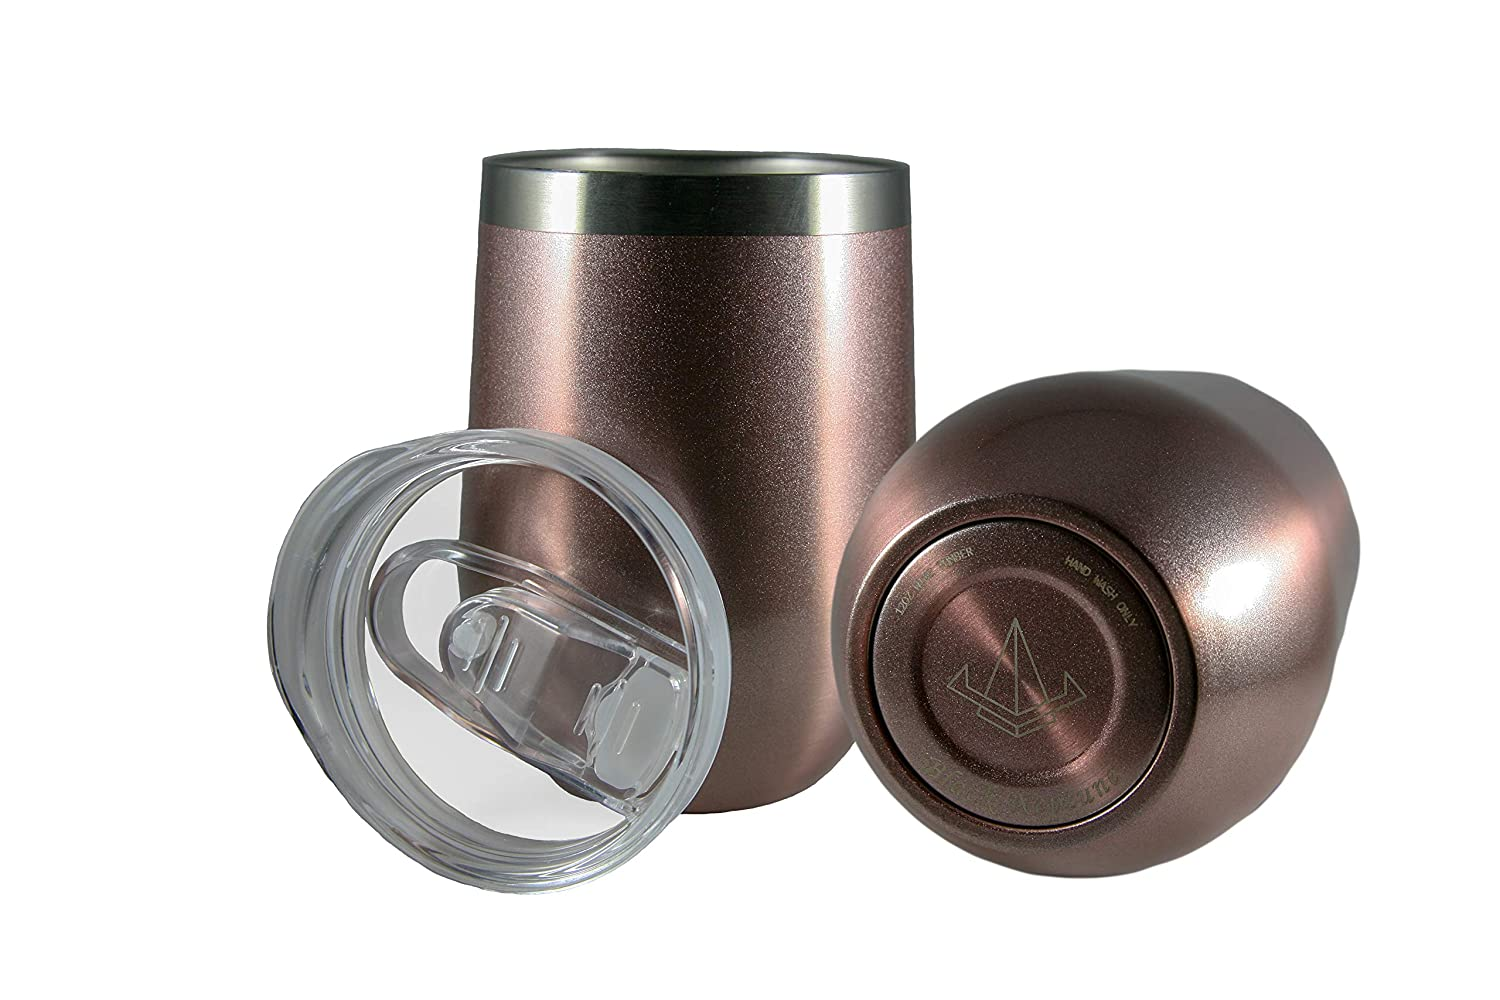 Perfect for any Drink and Occasion 9 Hr Cold Drinks//3 Hr Hot Drinks Spill Resistant Lid Durable Stainless Steel Black Neptune 12 oz Double Vacuum Insulated Stemless Wine Tumbler w//Sliding Lid